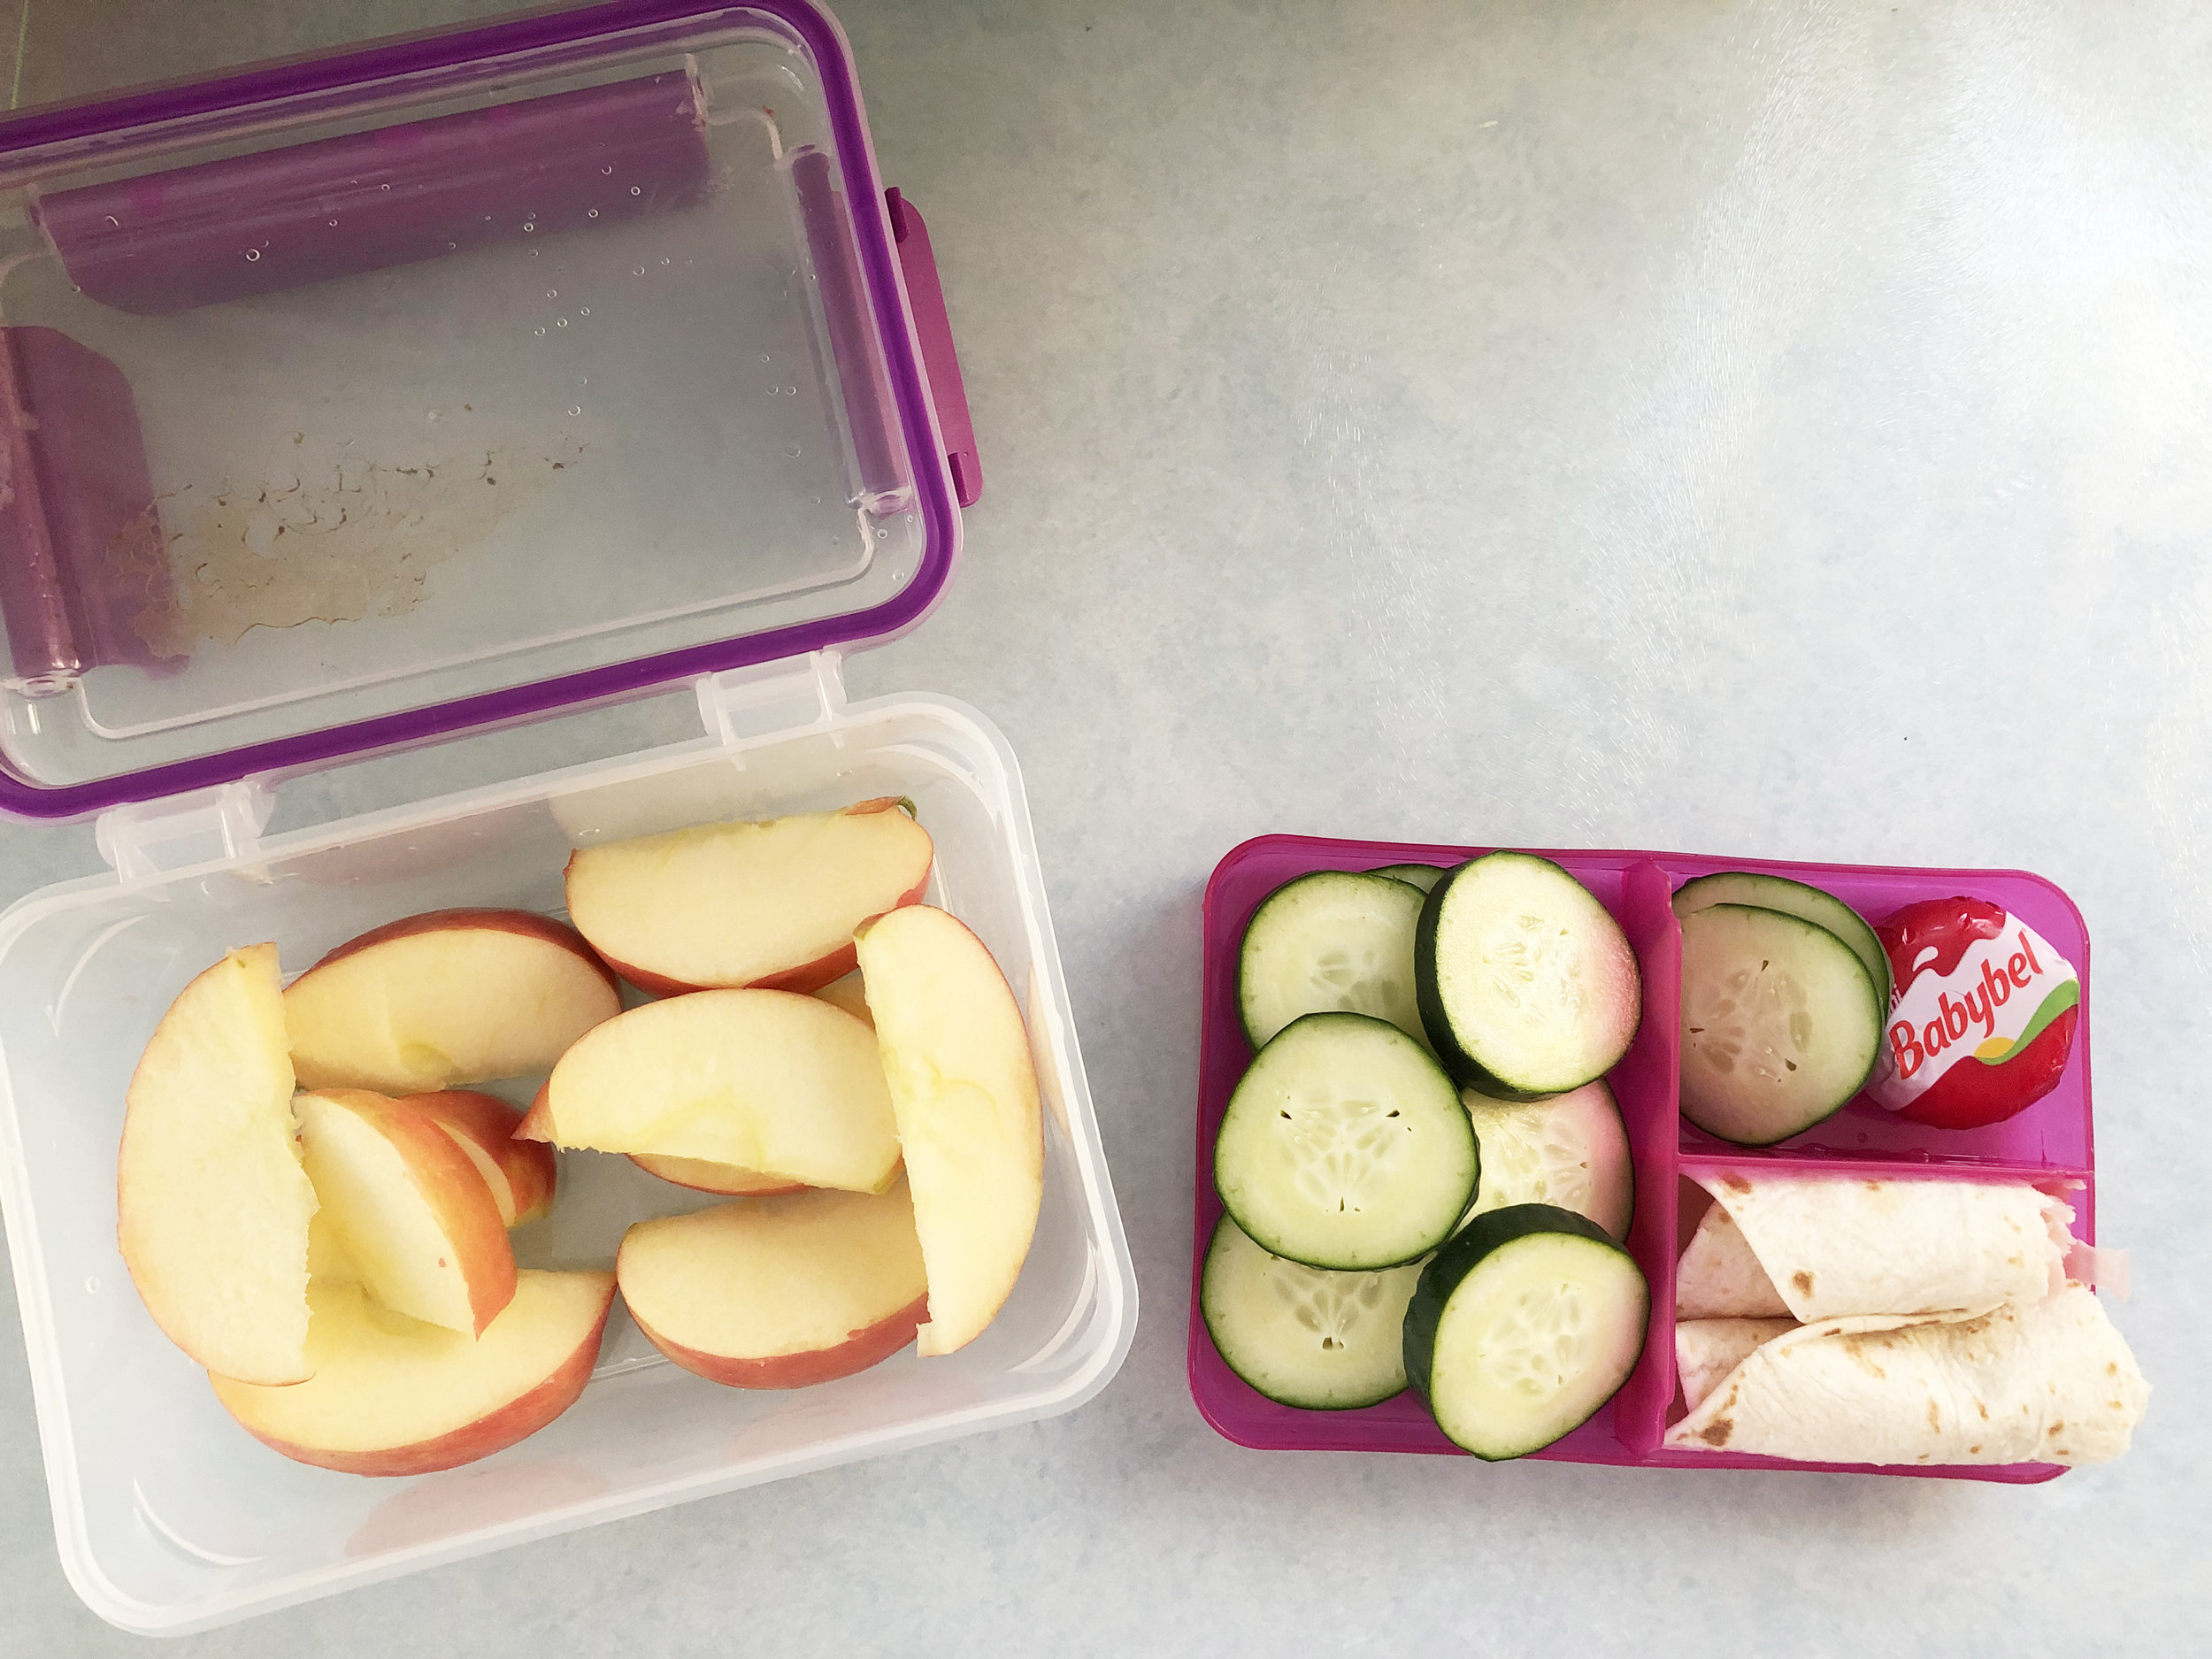 An example of my lunch: ham wrap, Baybel cheese, cucumbers, and apple slices.